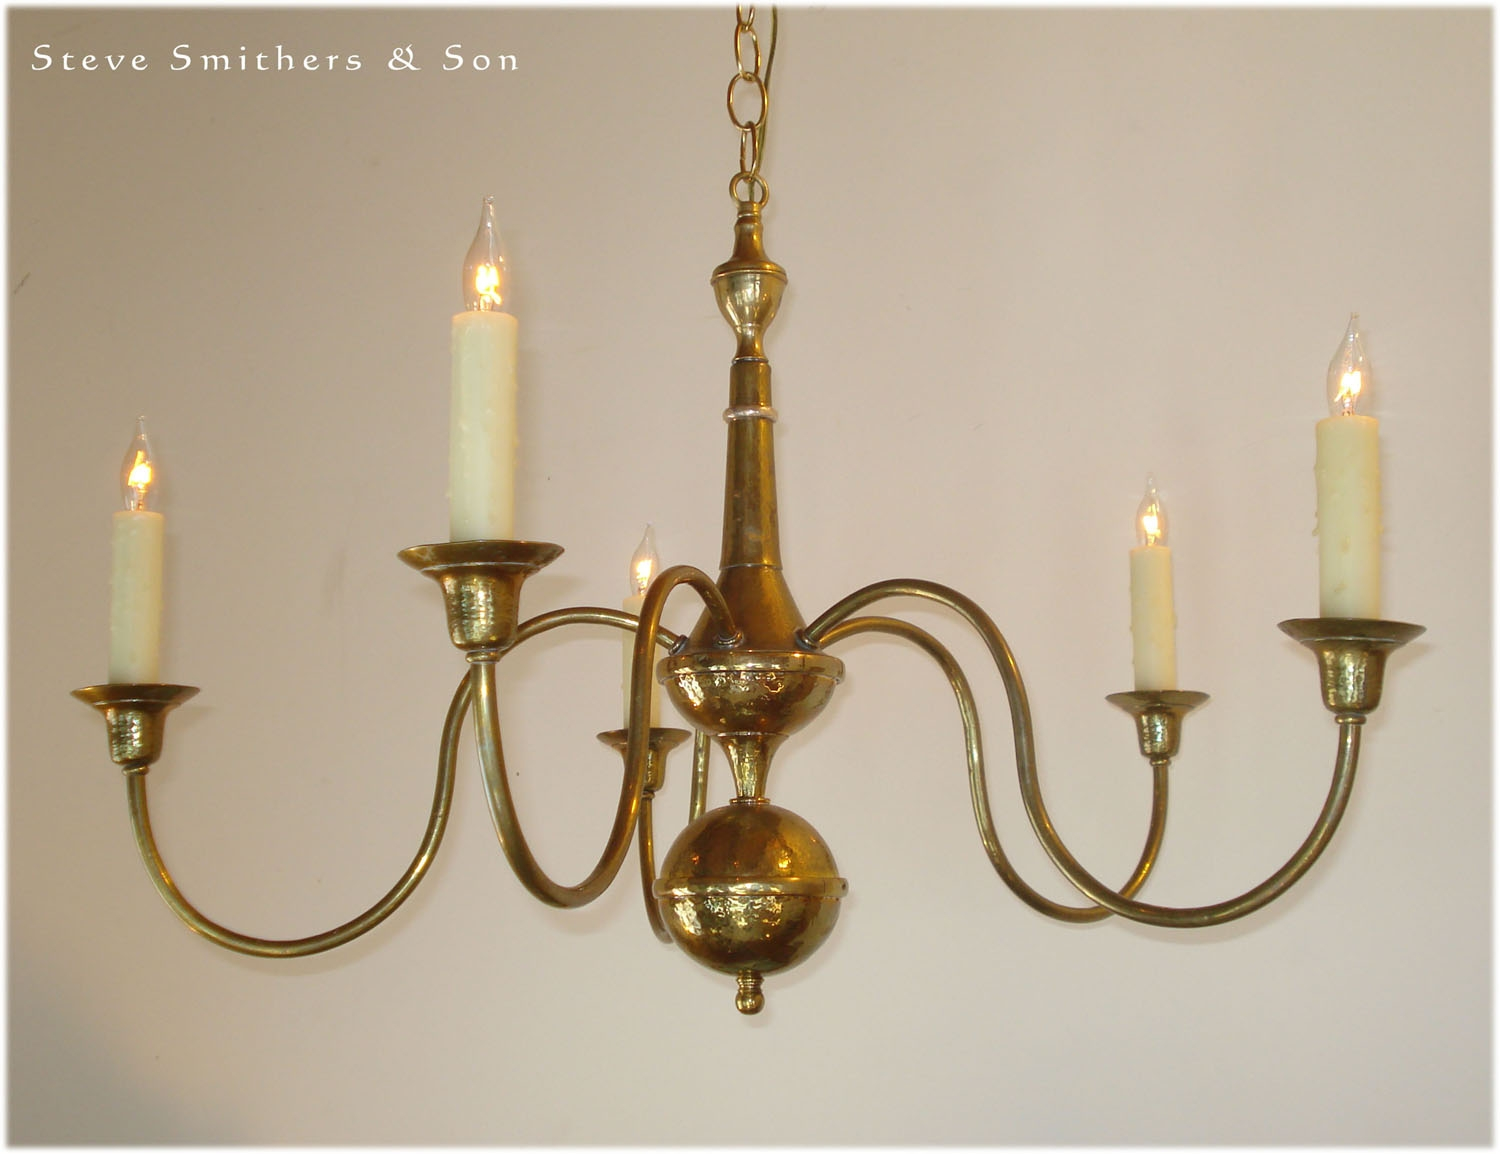 Handmade Brass Sconces Chandeliers Lamps Lanterns Regarding Brass Chandeliers (View 3 of 15)